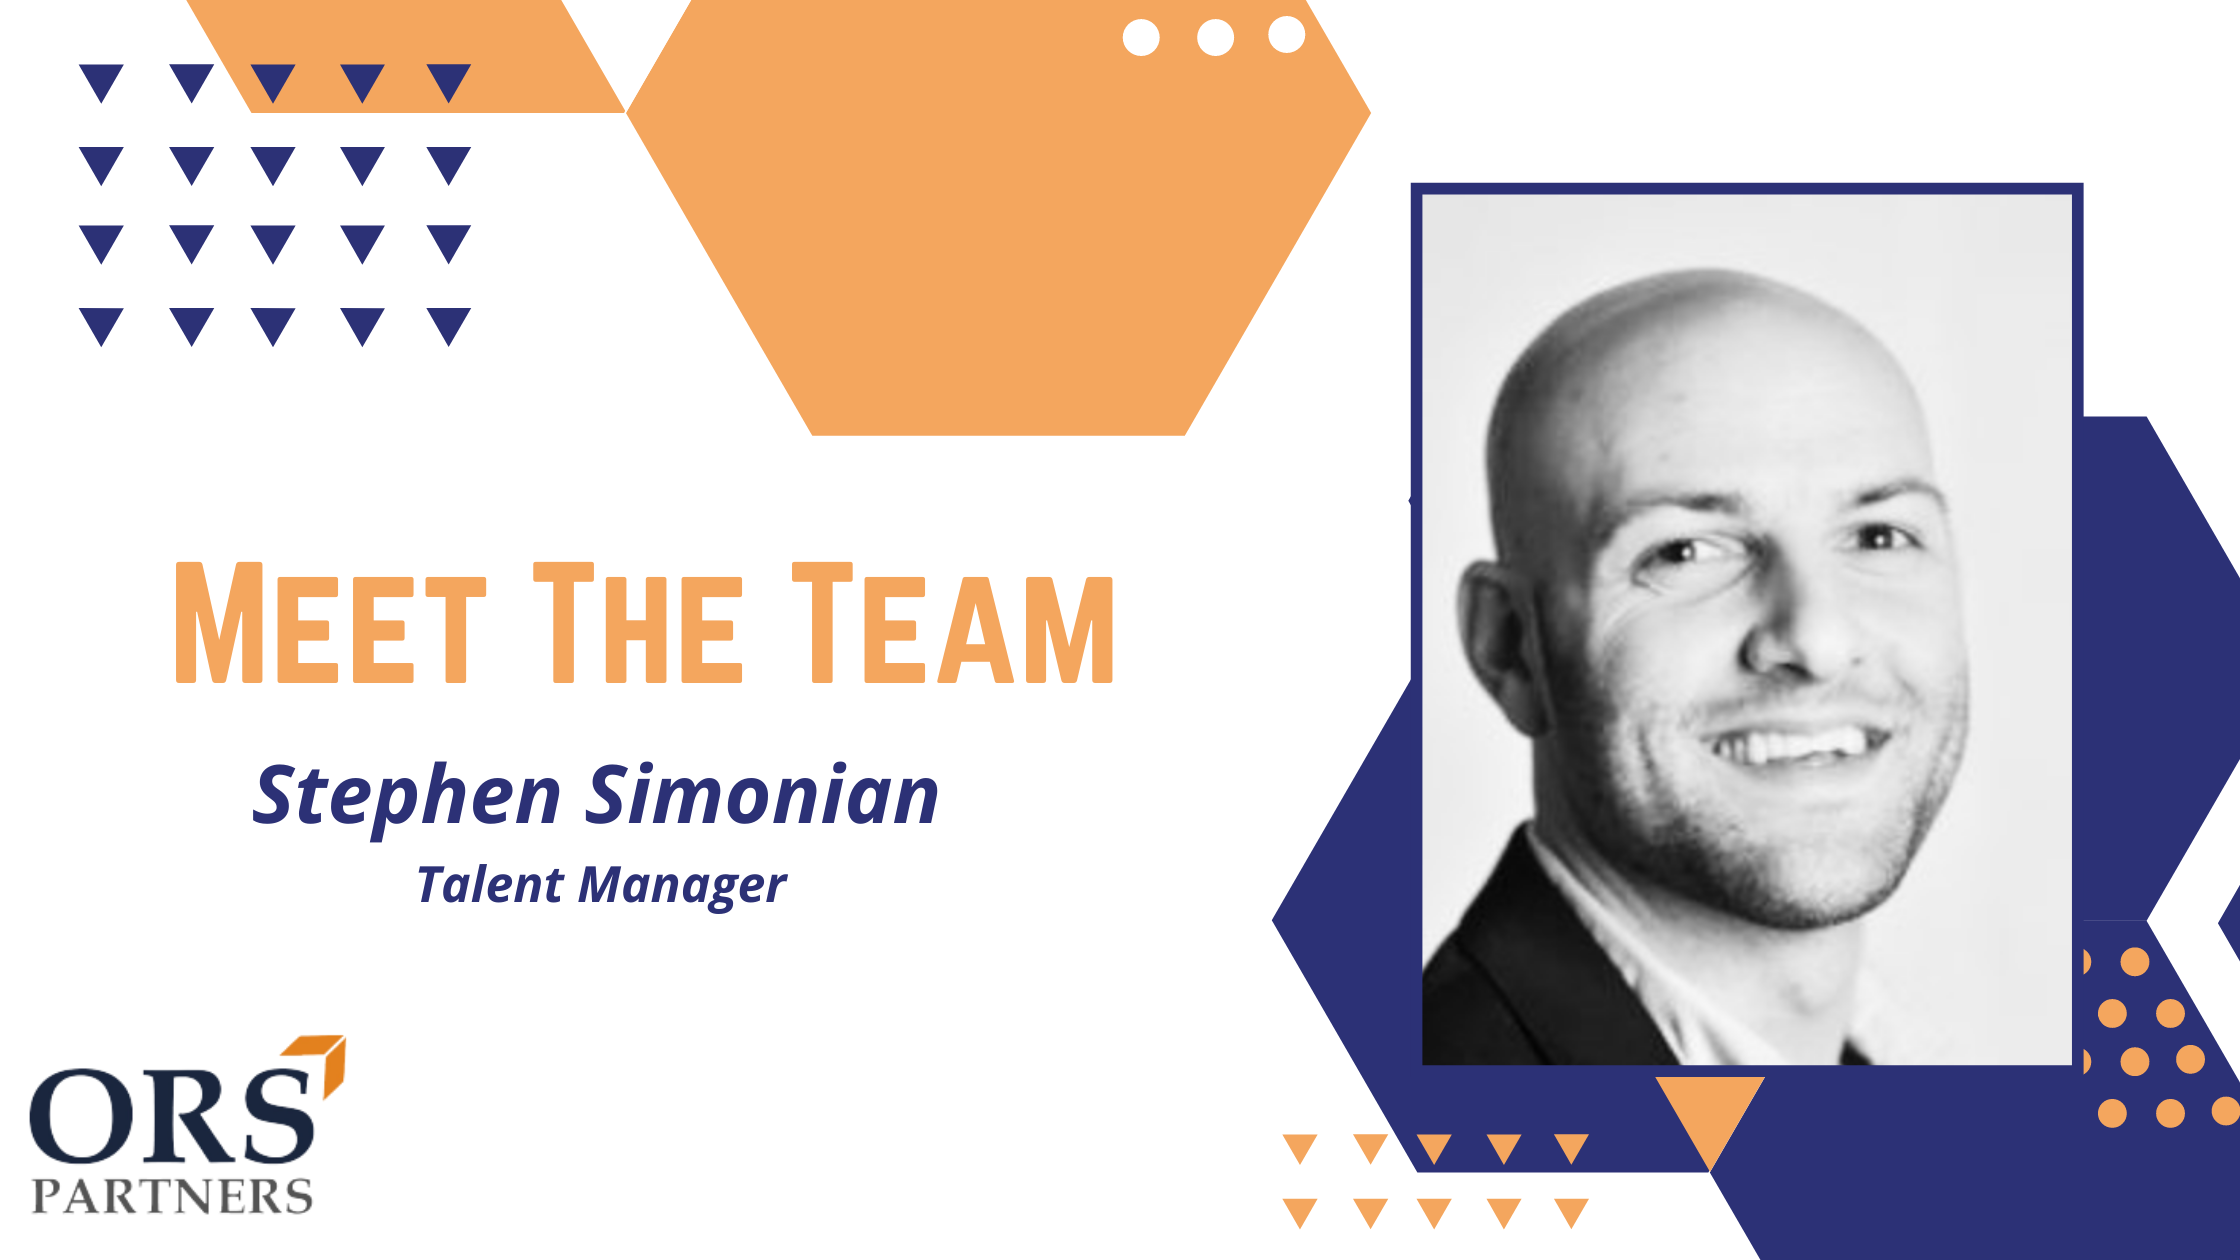 Meet the Team: Stephen Simonian